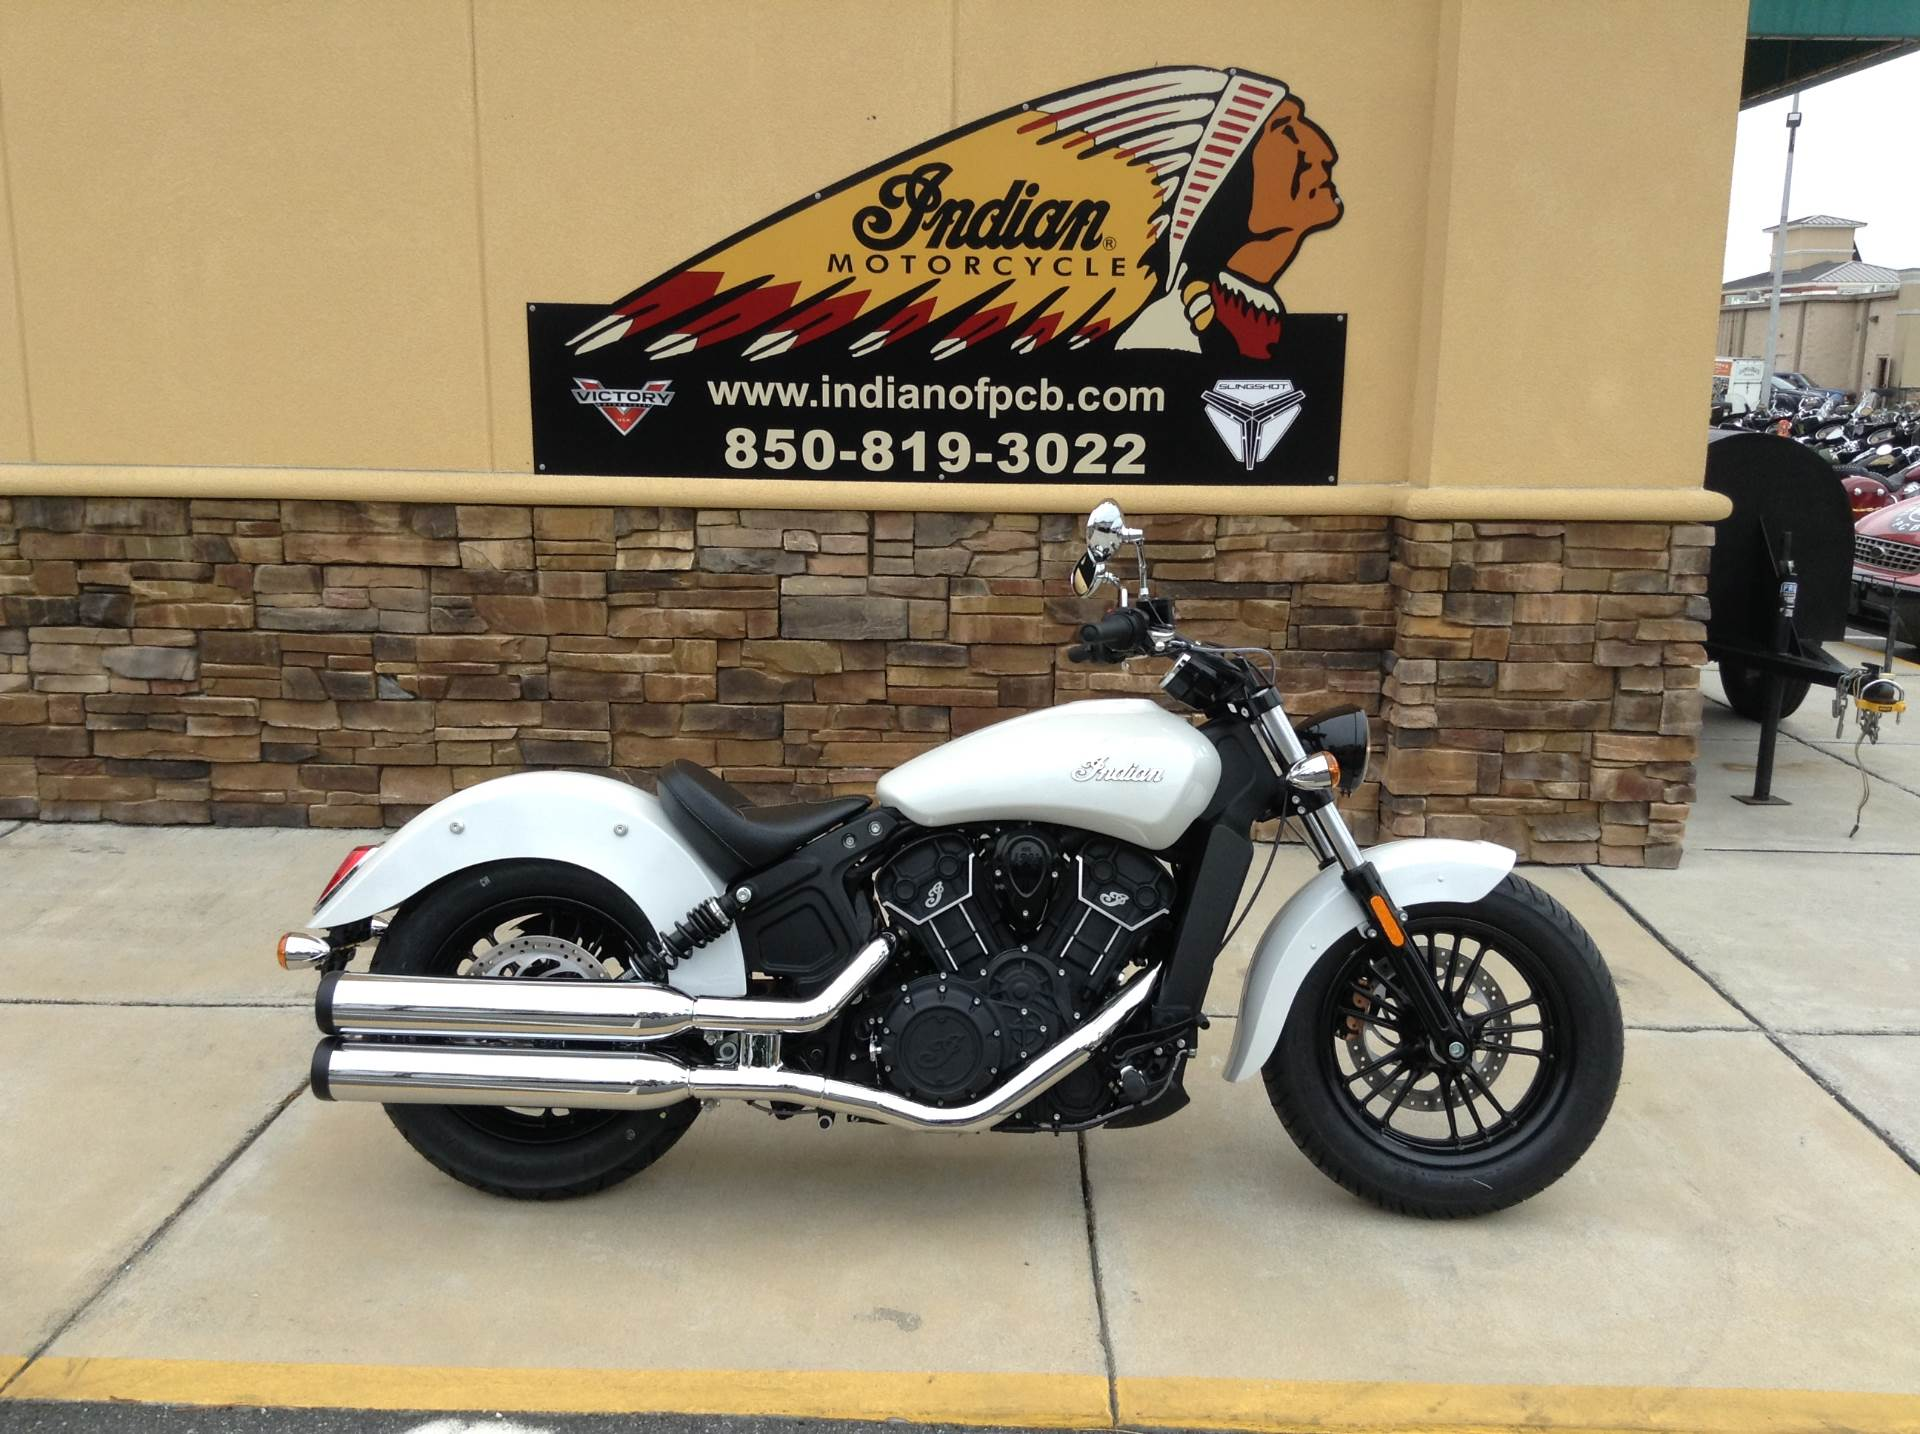 2017 Indian SCOUT 60